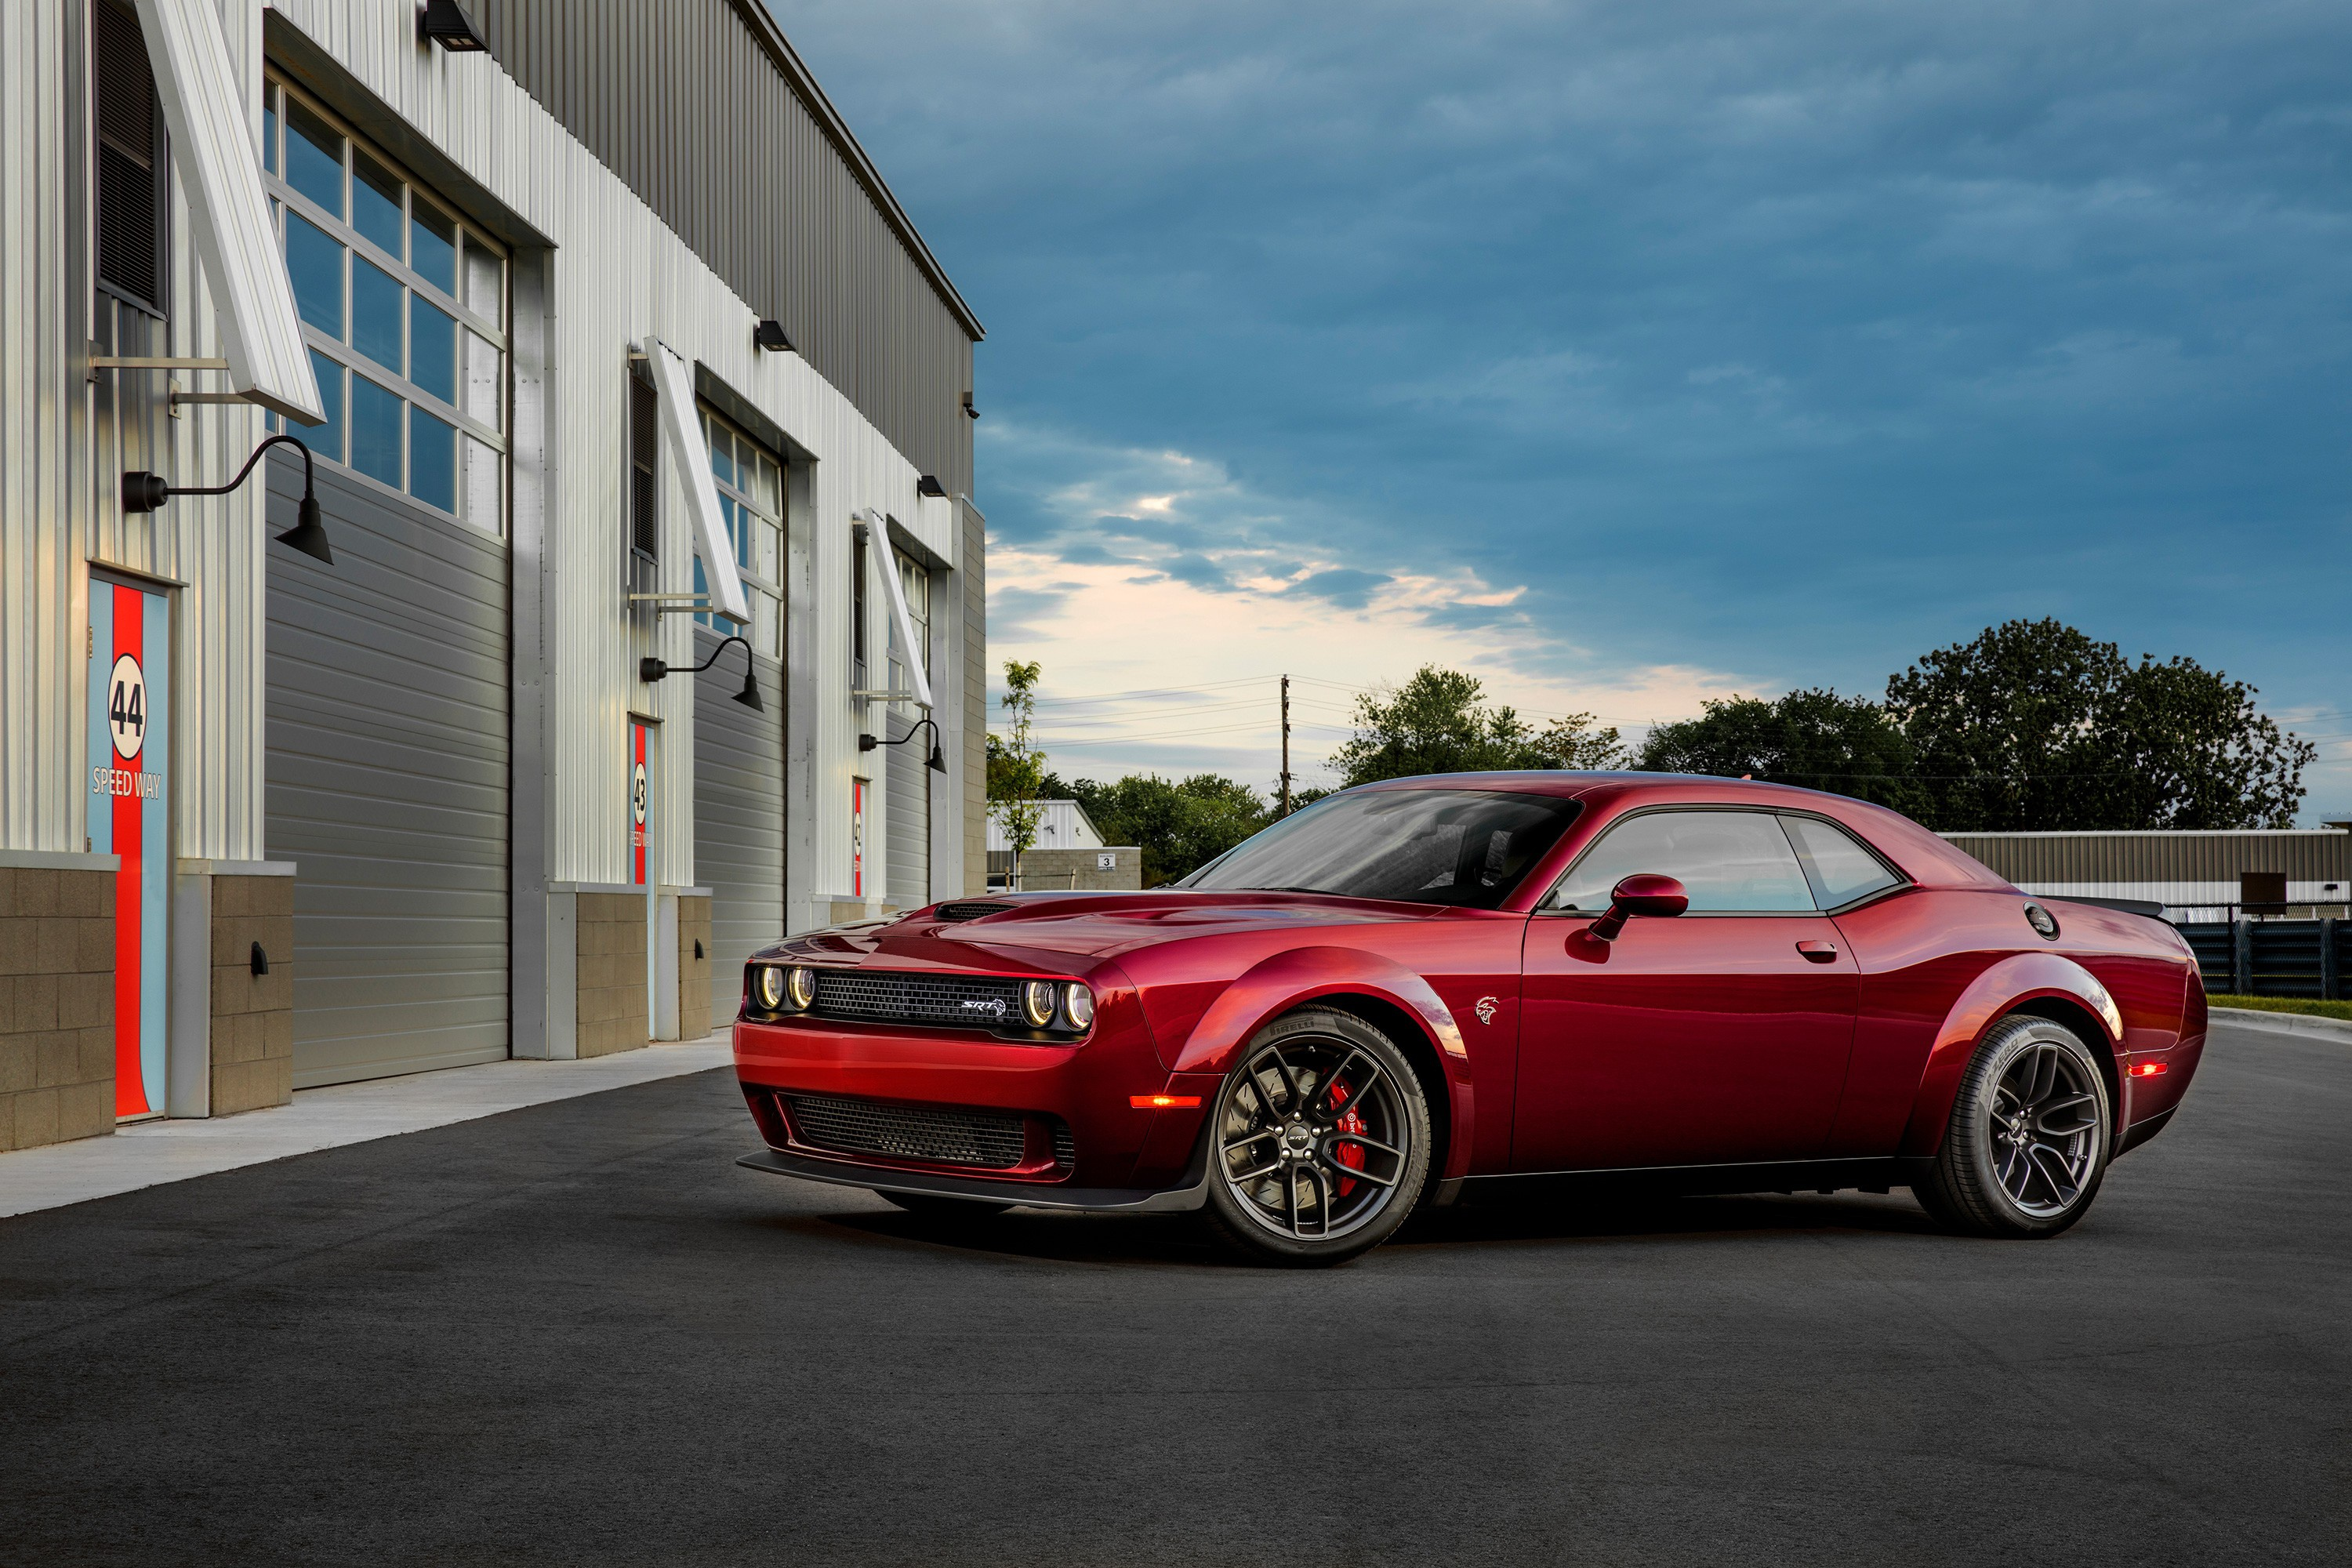 dodge challenger srt wallpapers, pictures, images